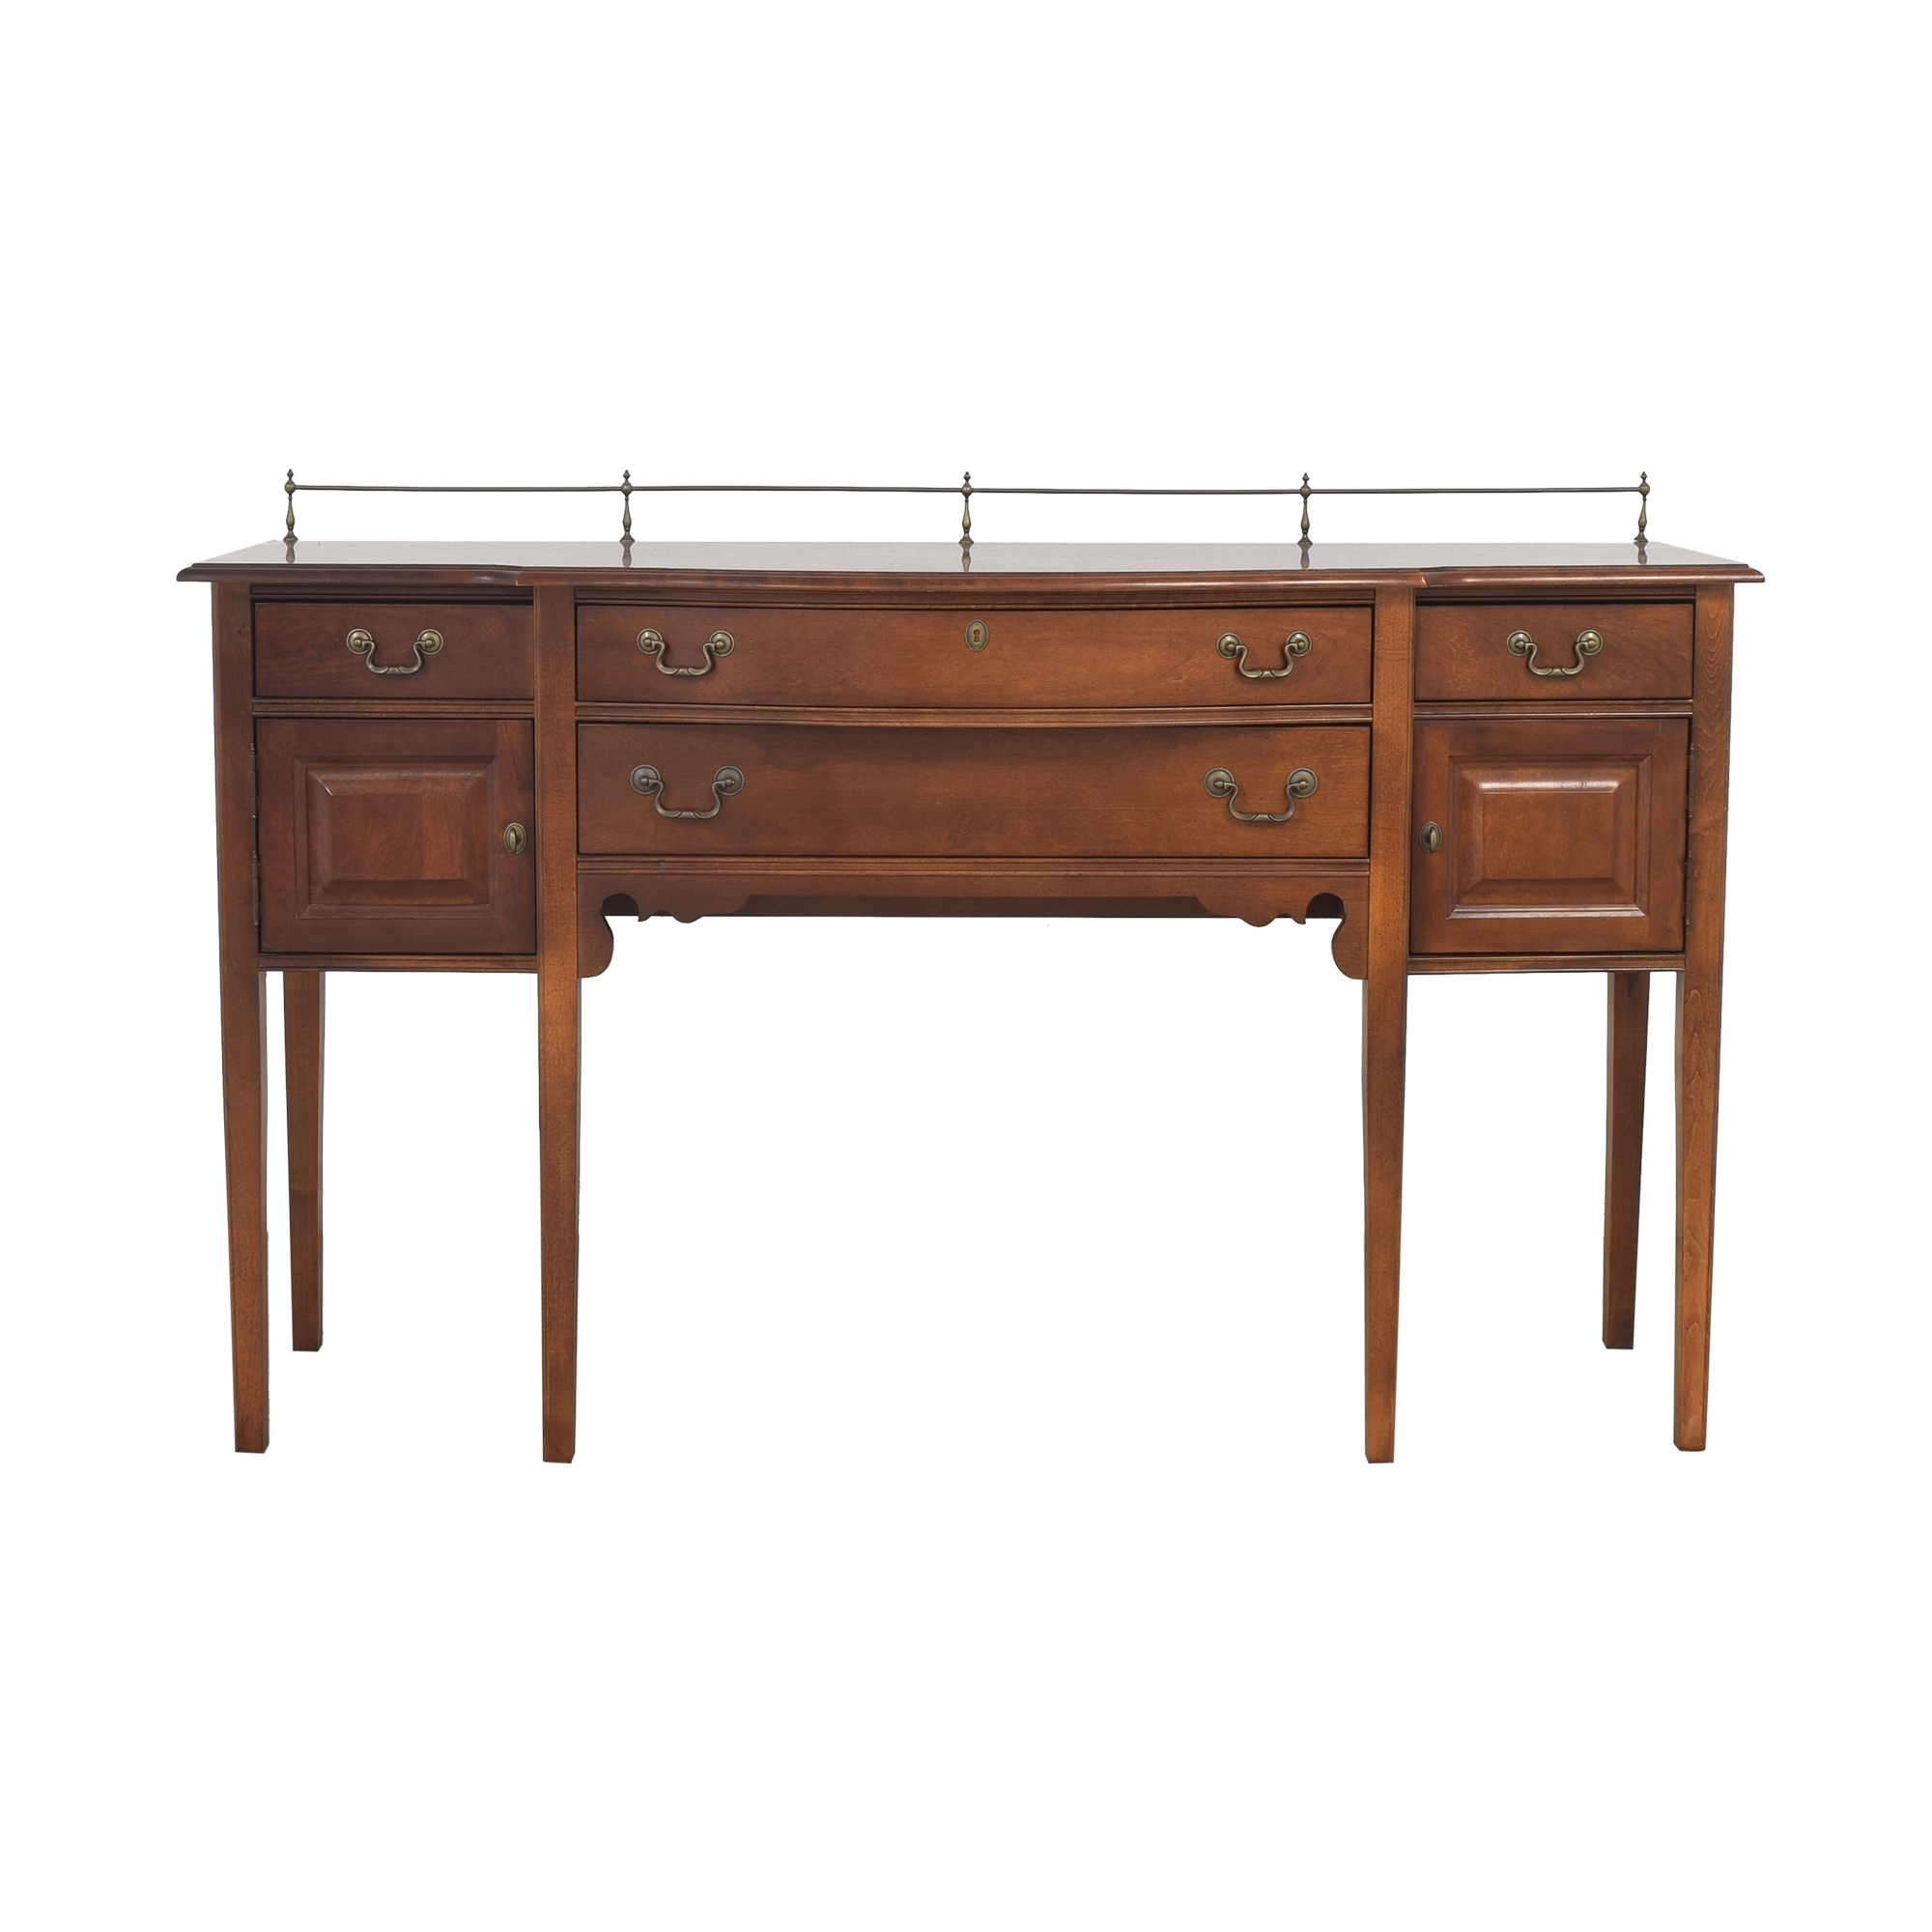 Broyhill Furniture Broyhill Premier Sheraton Sideboard second hand